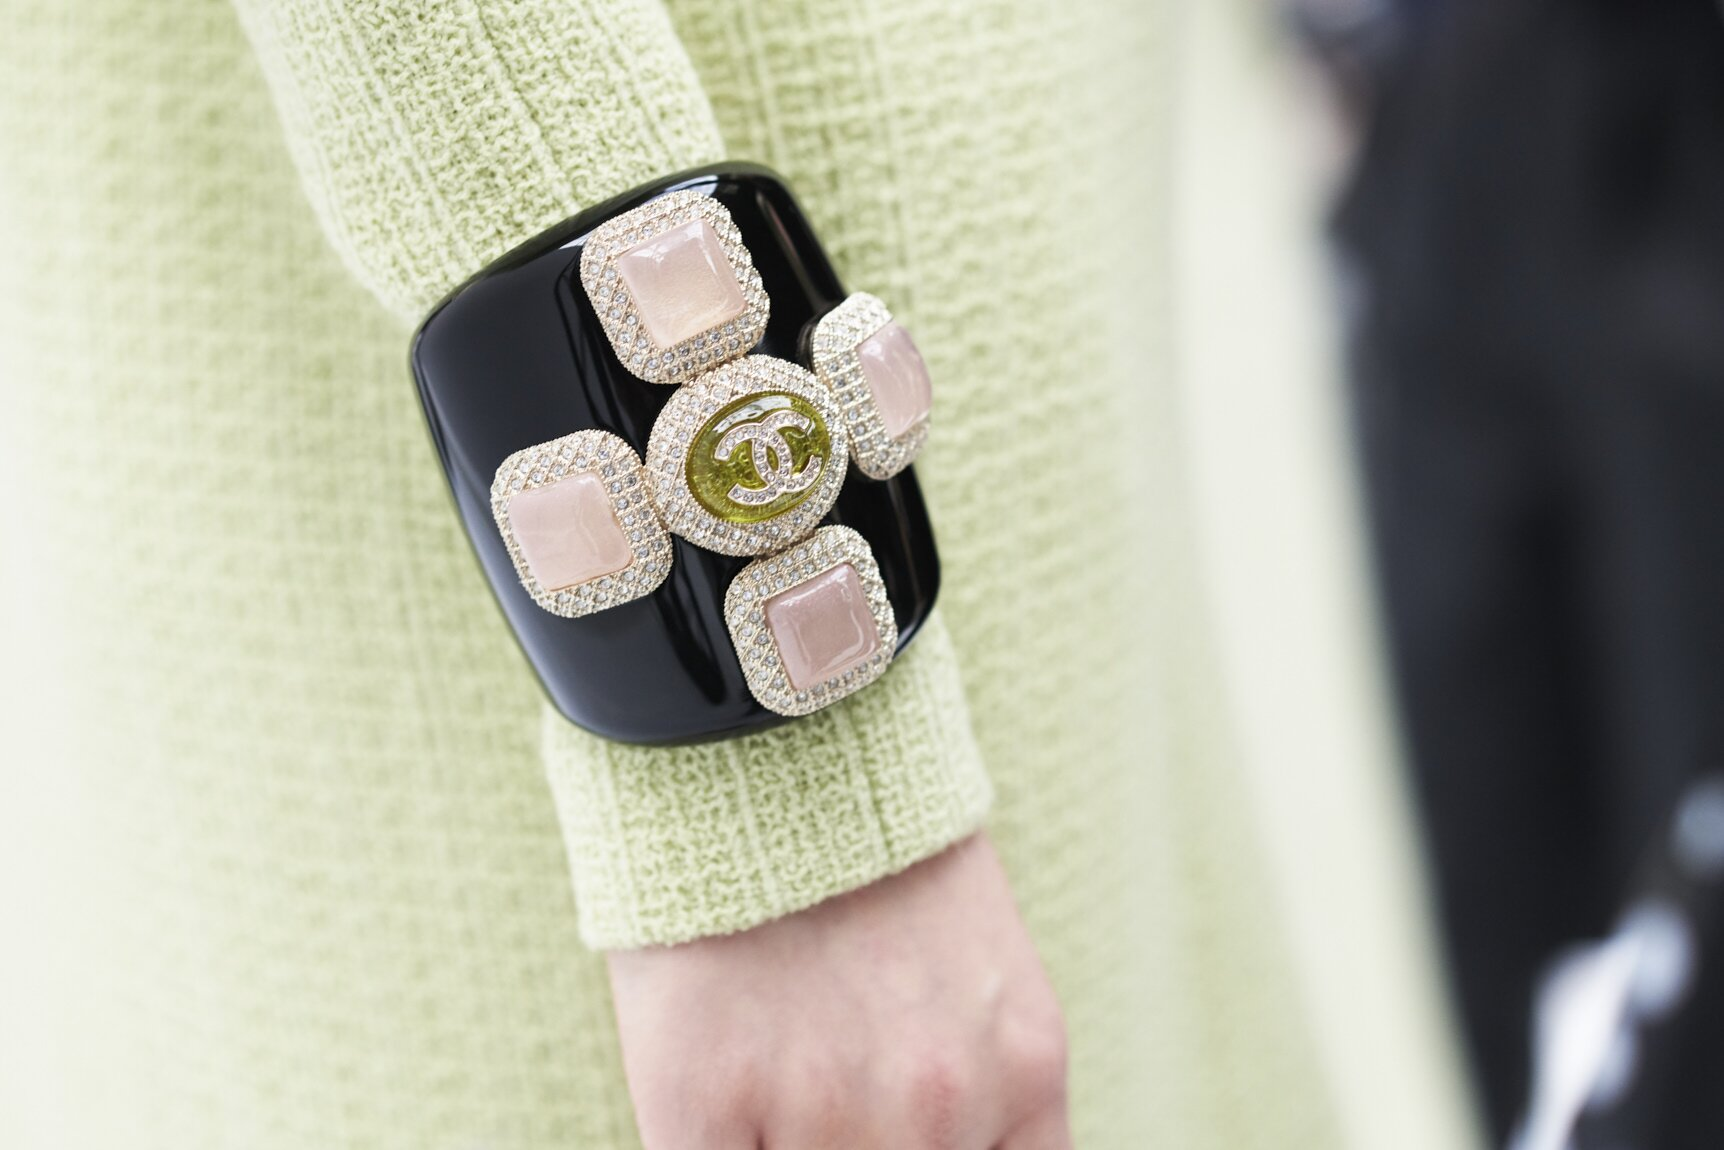 Chanel Bracelet 2020 Fall Winter 2020 Collection